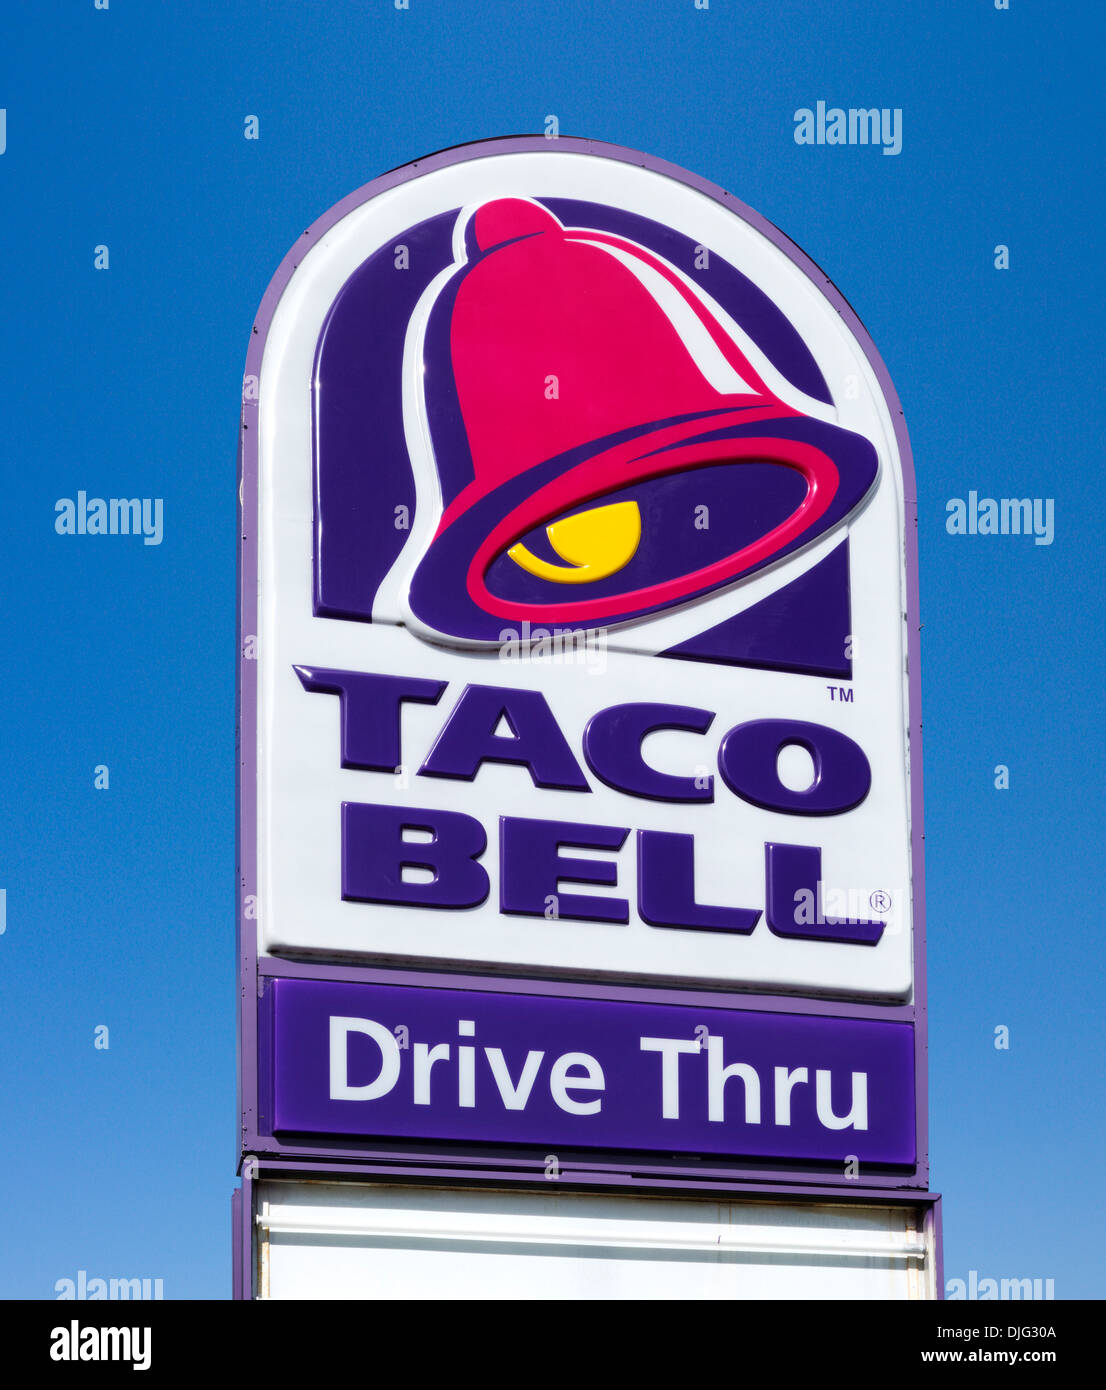 Taco Bell Sign Stock Photos Taco Bell Sign Stock Images Alamy